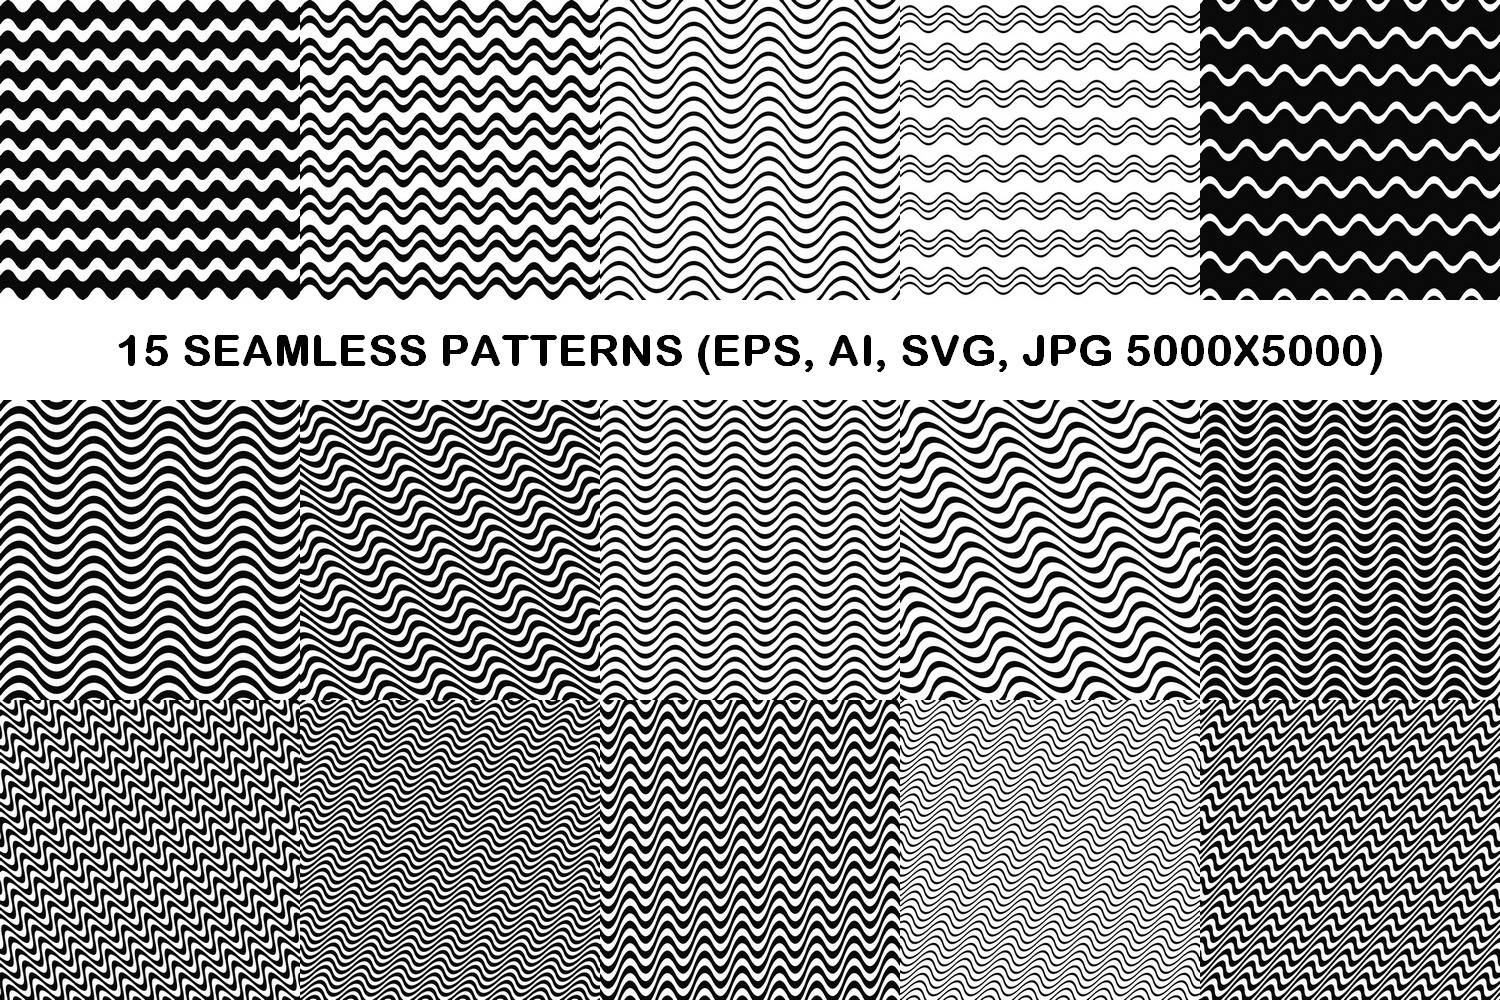 75 Monochrome Geometrical Patterns AI, EPS, JPG 5000x5000 example image 6